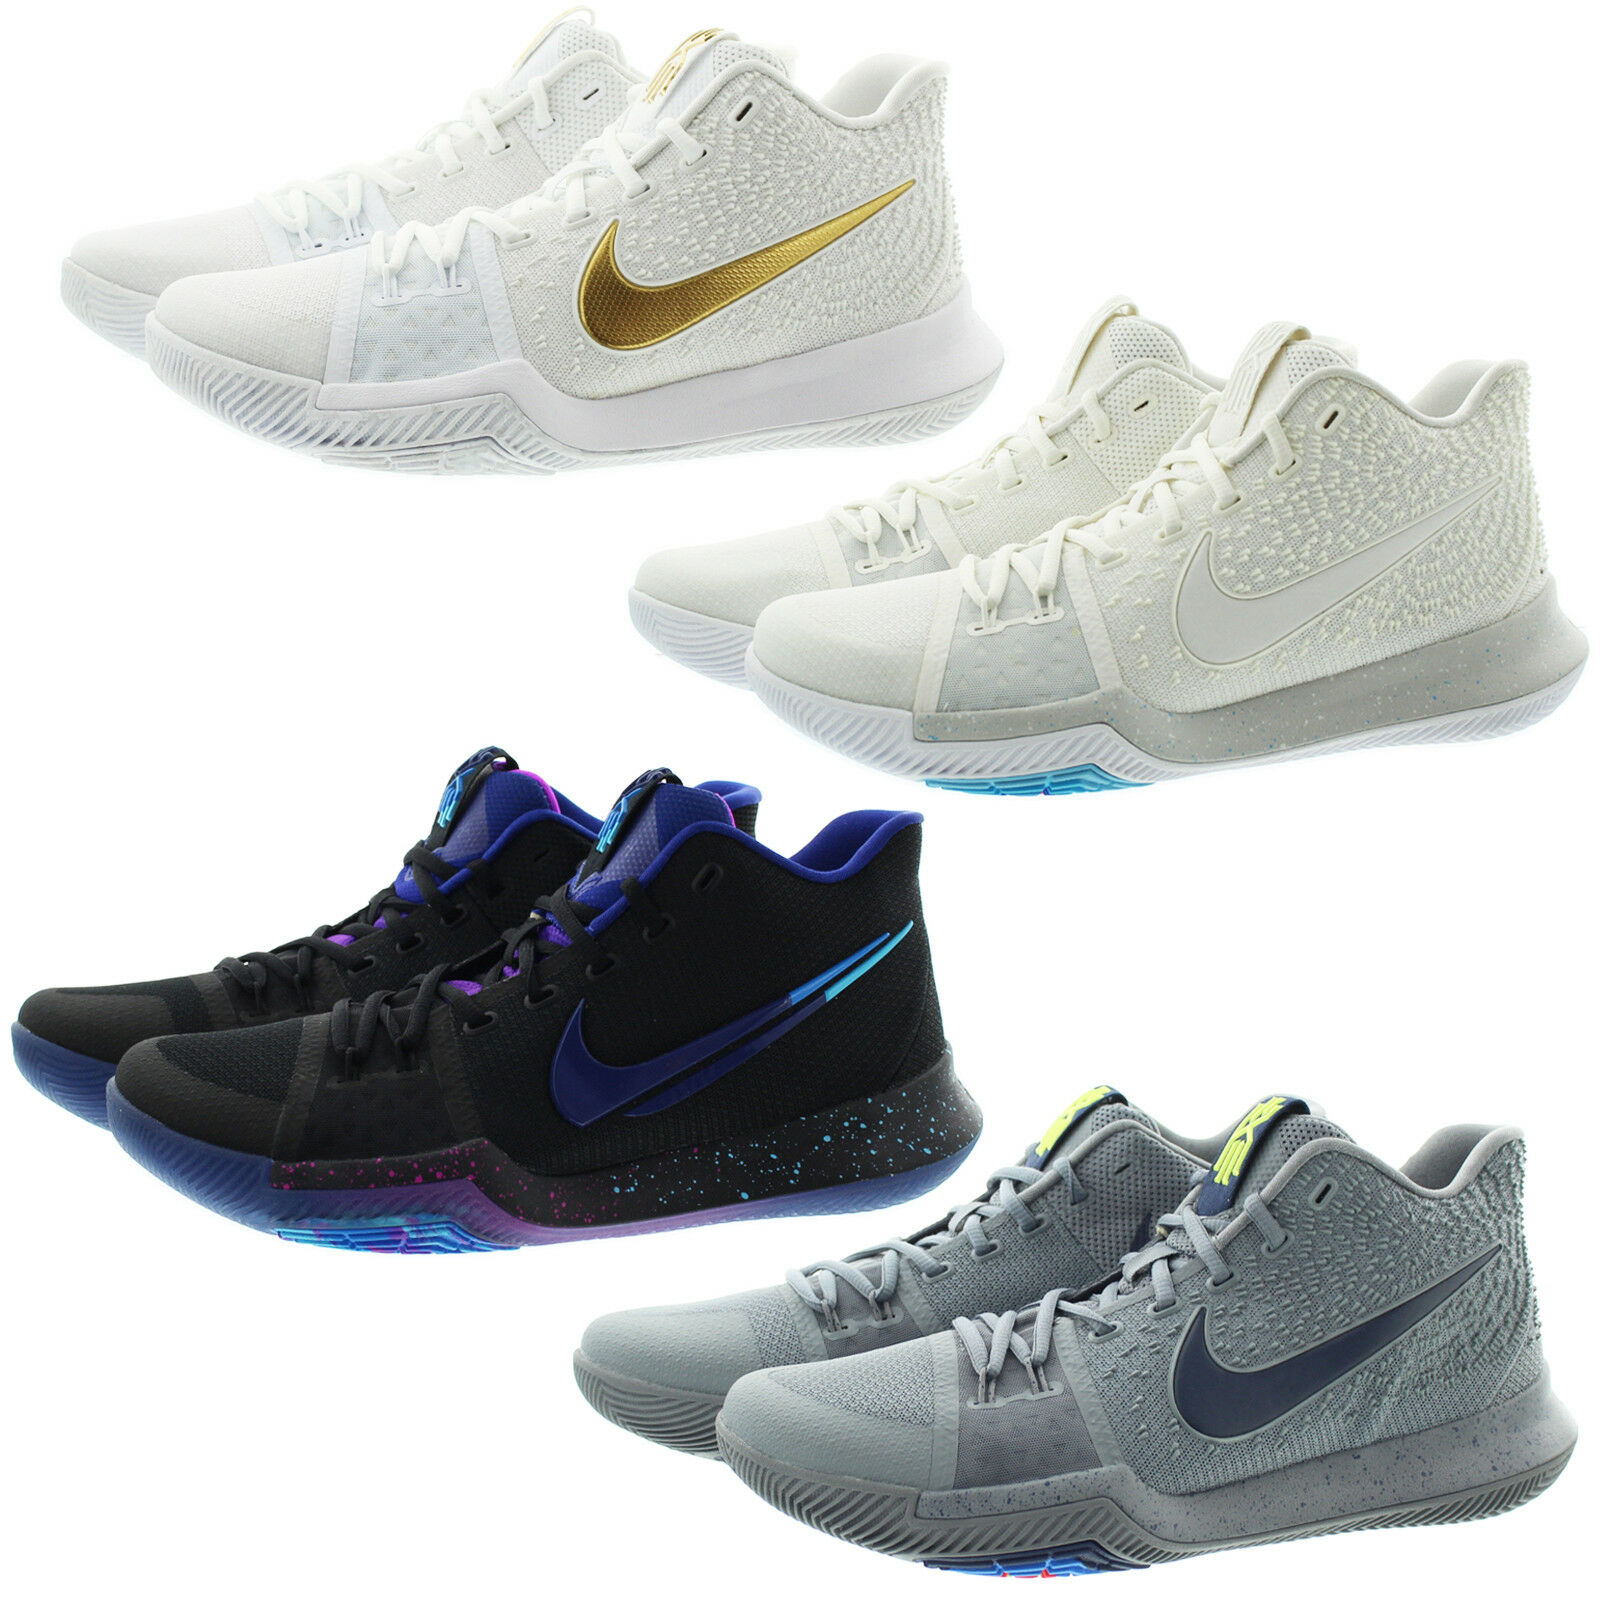 Nike 852395 Mens Zoom Kyrie 3 Mid Top Basketball Athletic shoes Sneakers